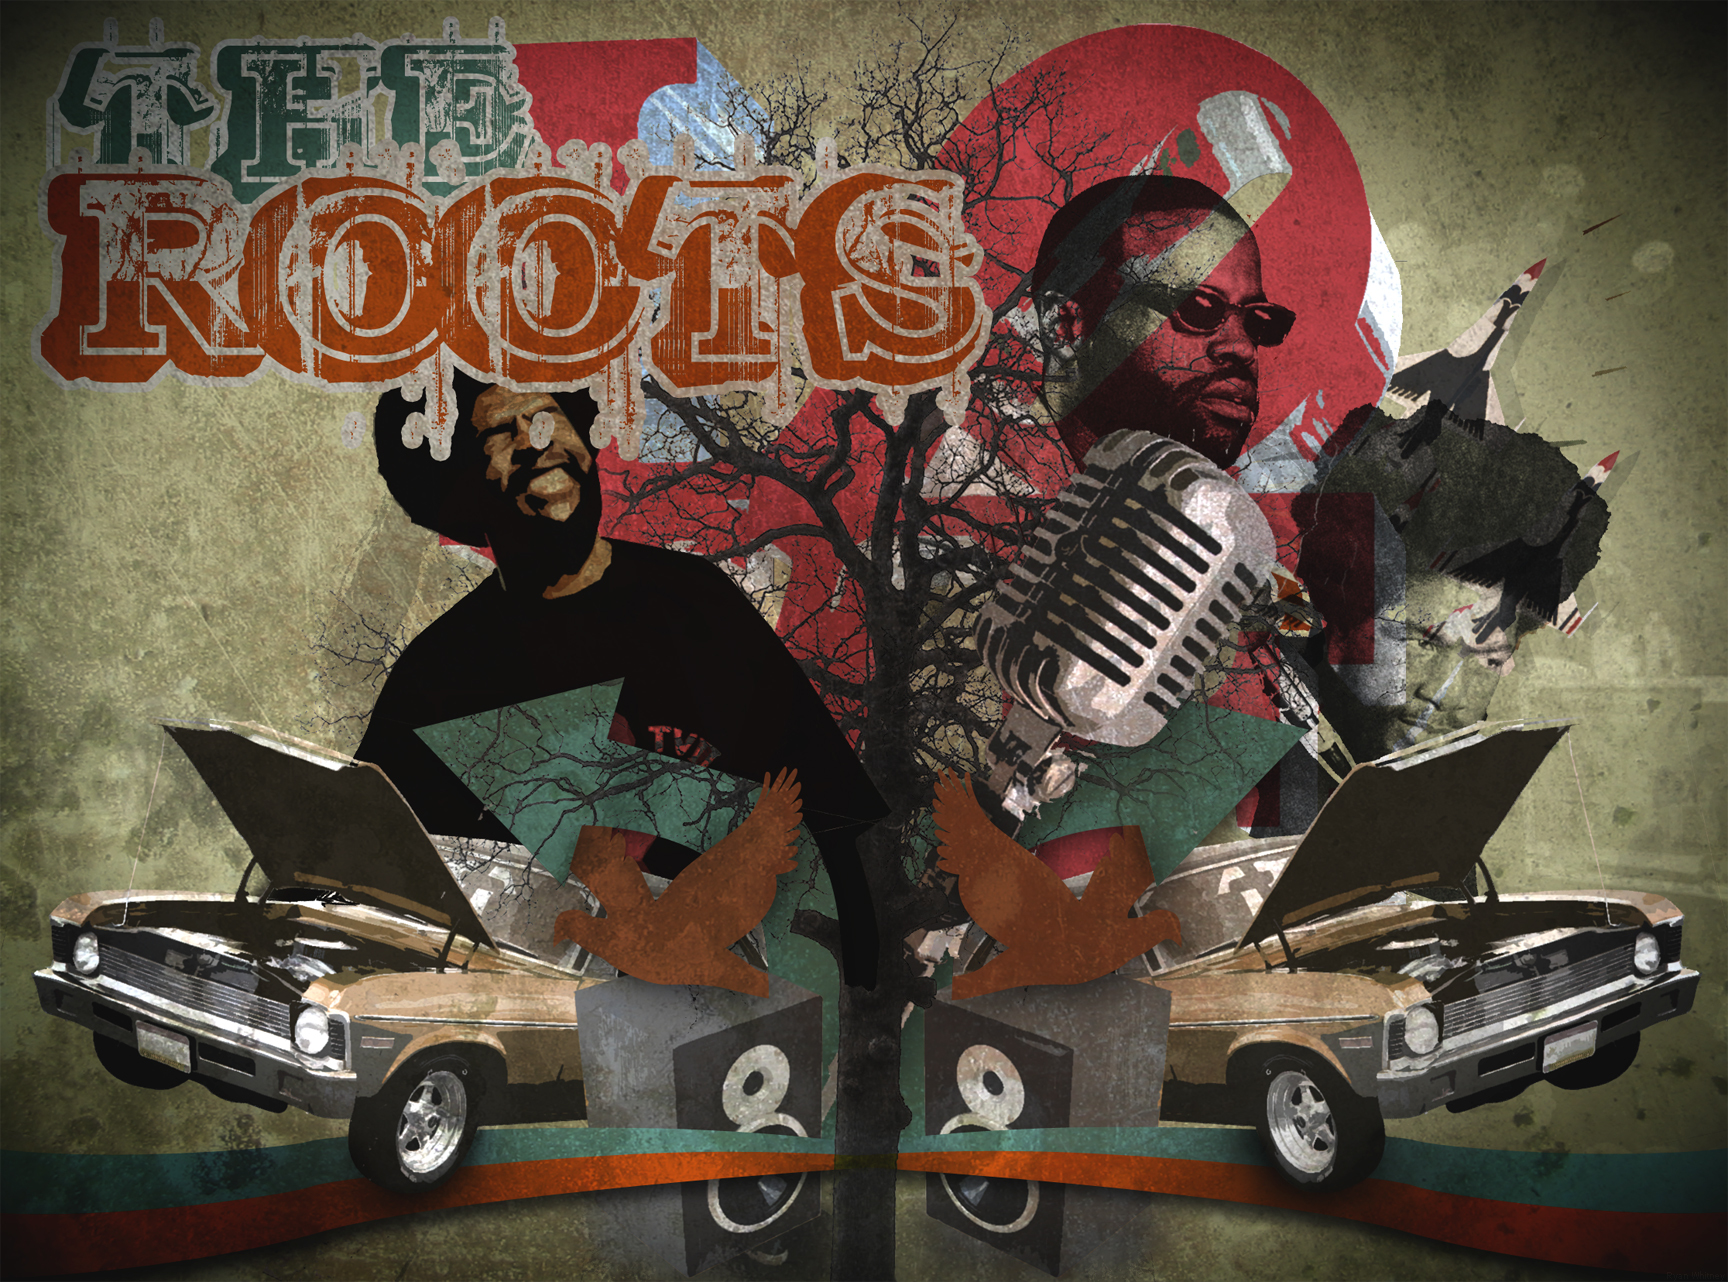 The roots by whits HD Wallpaper